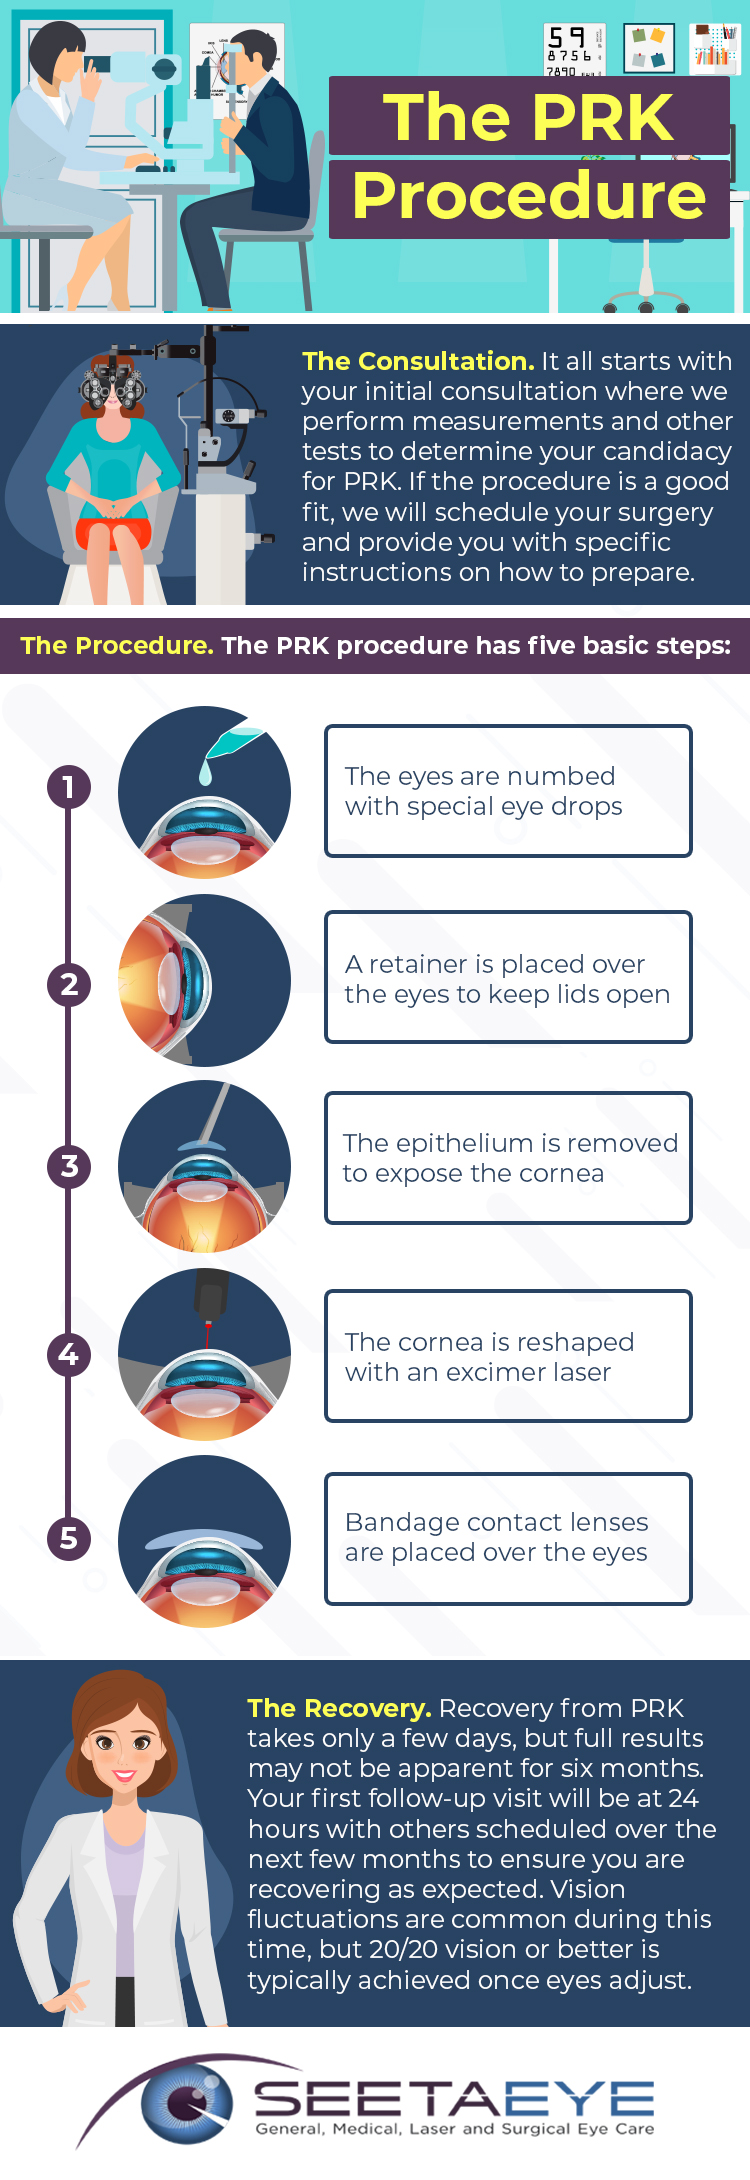 The PRK Procedure - Infographic for Seeta Eye Centers in Fishkill & Poughkeepsie